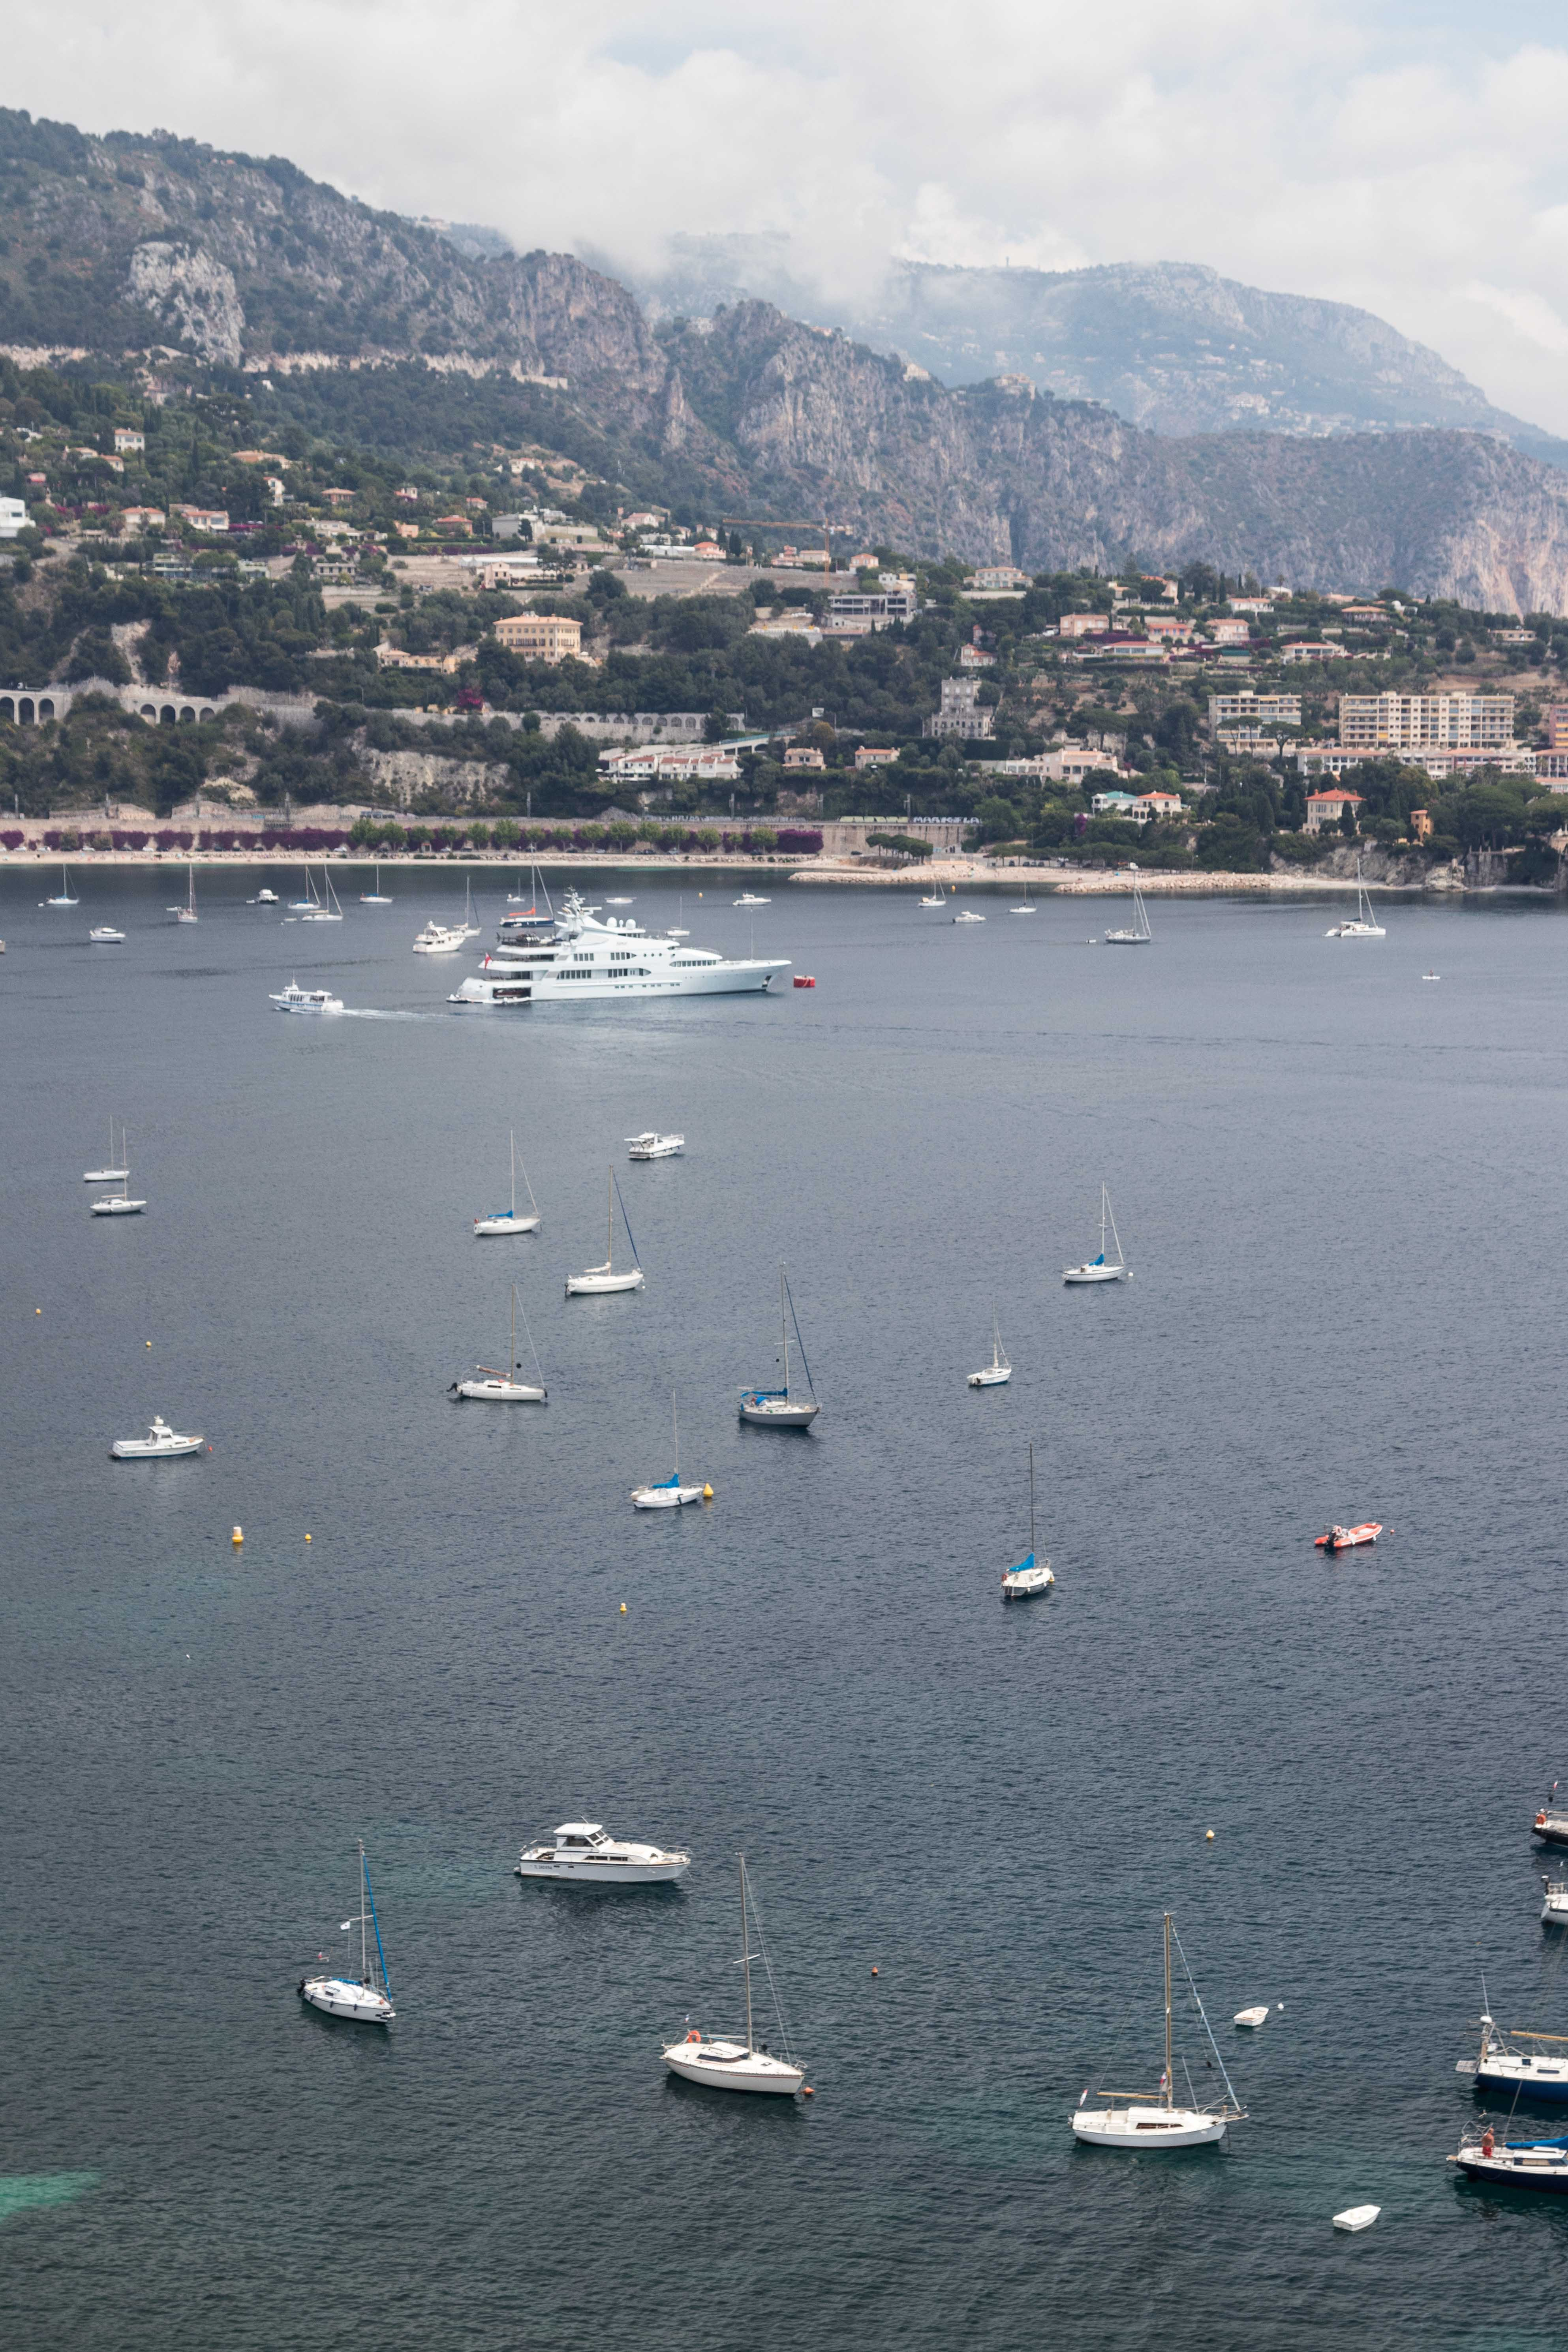 Boats on the French Riviera Coast | https://www.roseclearfield.com